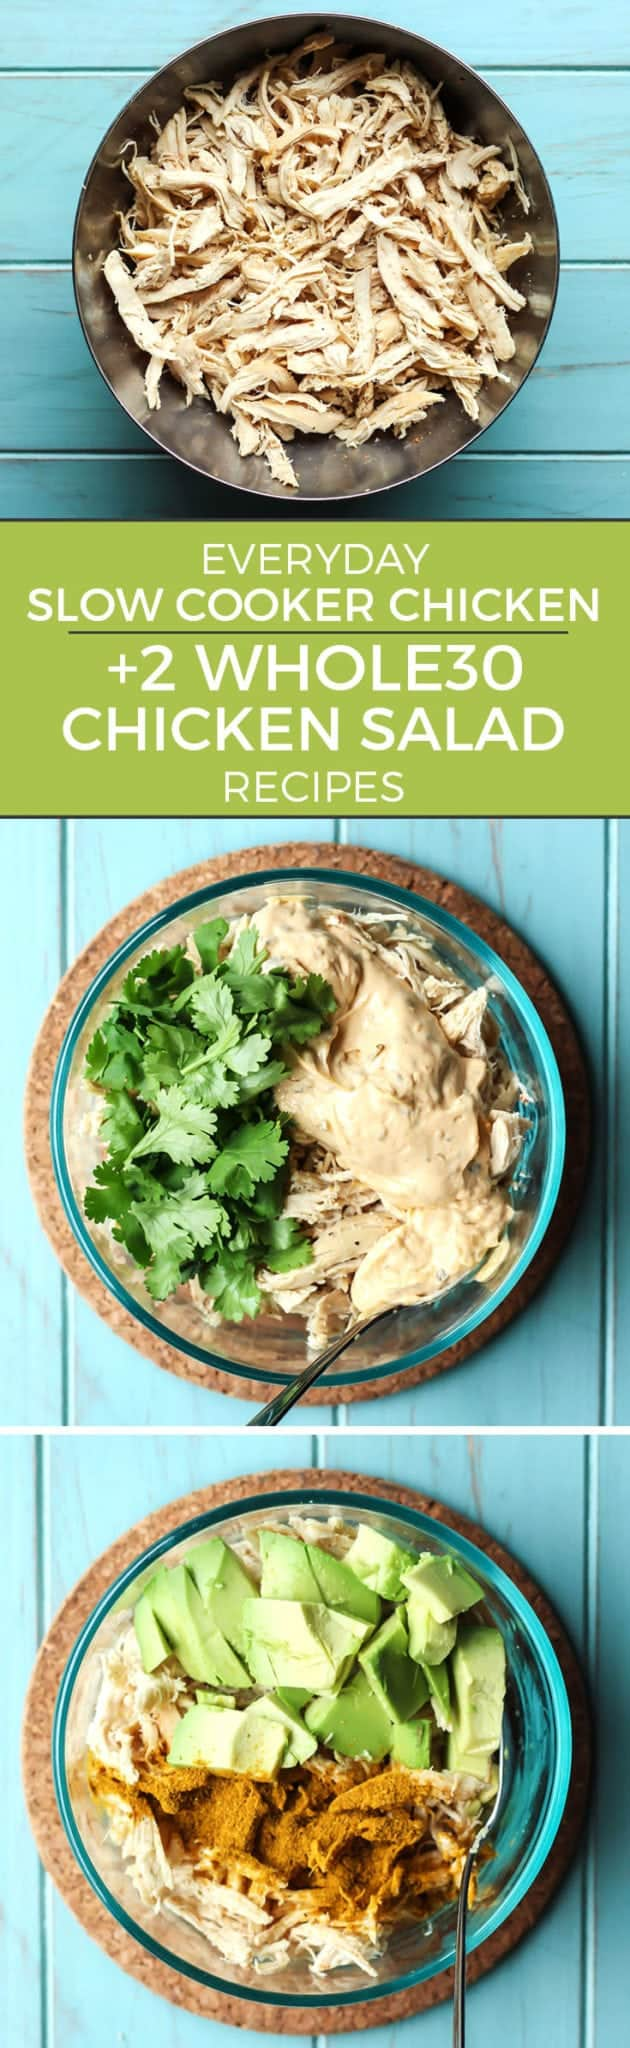 Everyday Slow Cooker Chicken. Plus 2 SUPER EASY Whole30 chicken salad recipes pinterest image